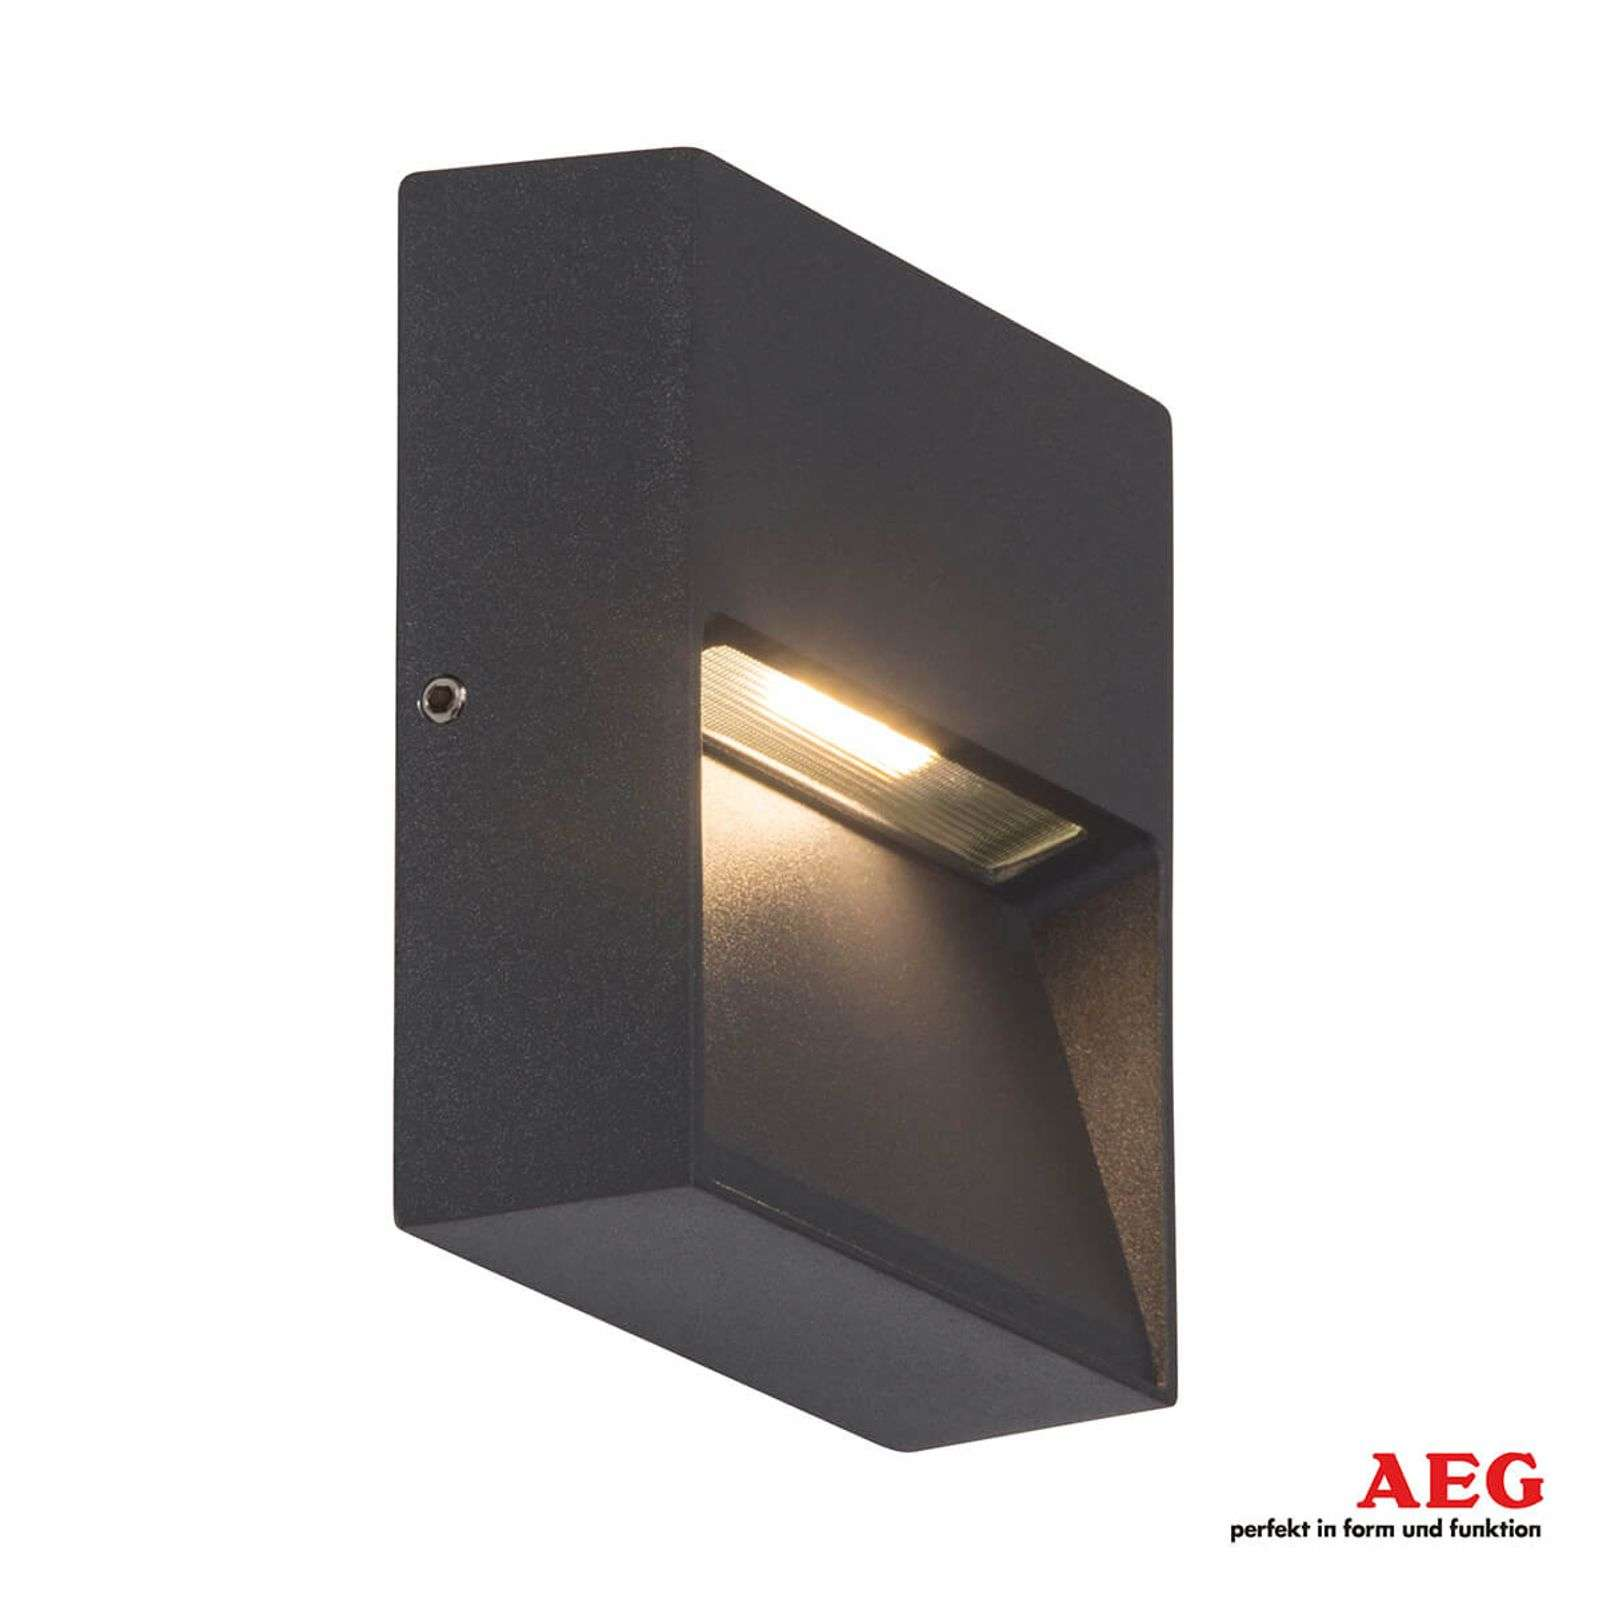 Front - applique da esterni LED angolare